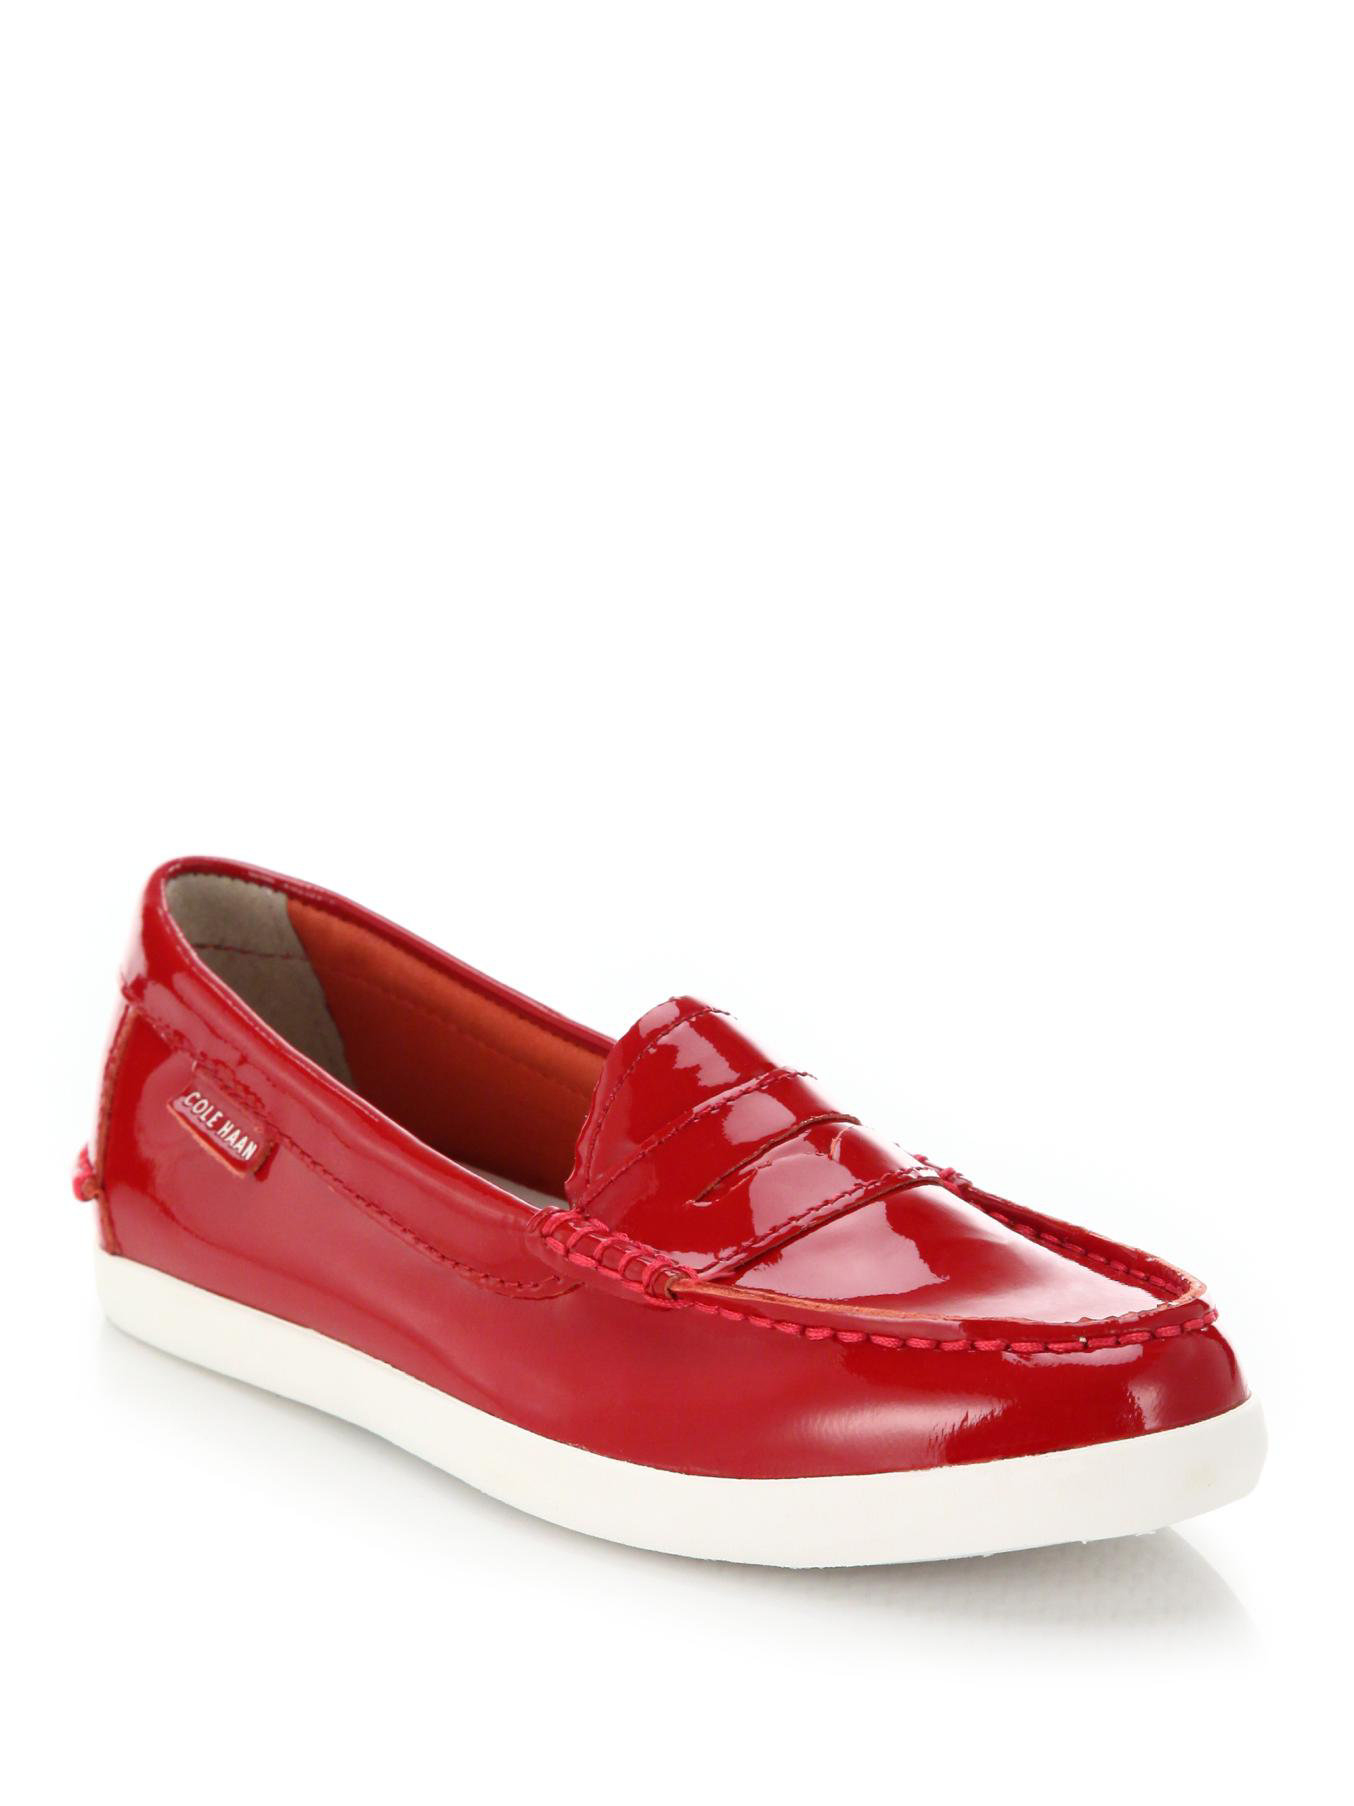 Cole Haan Red Patent Leather Shoes